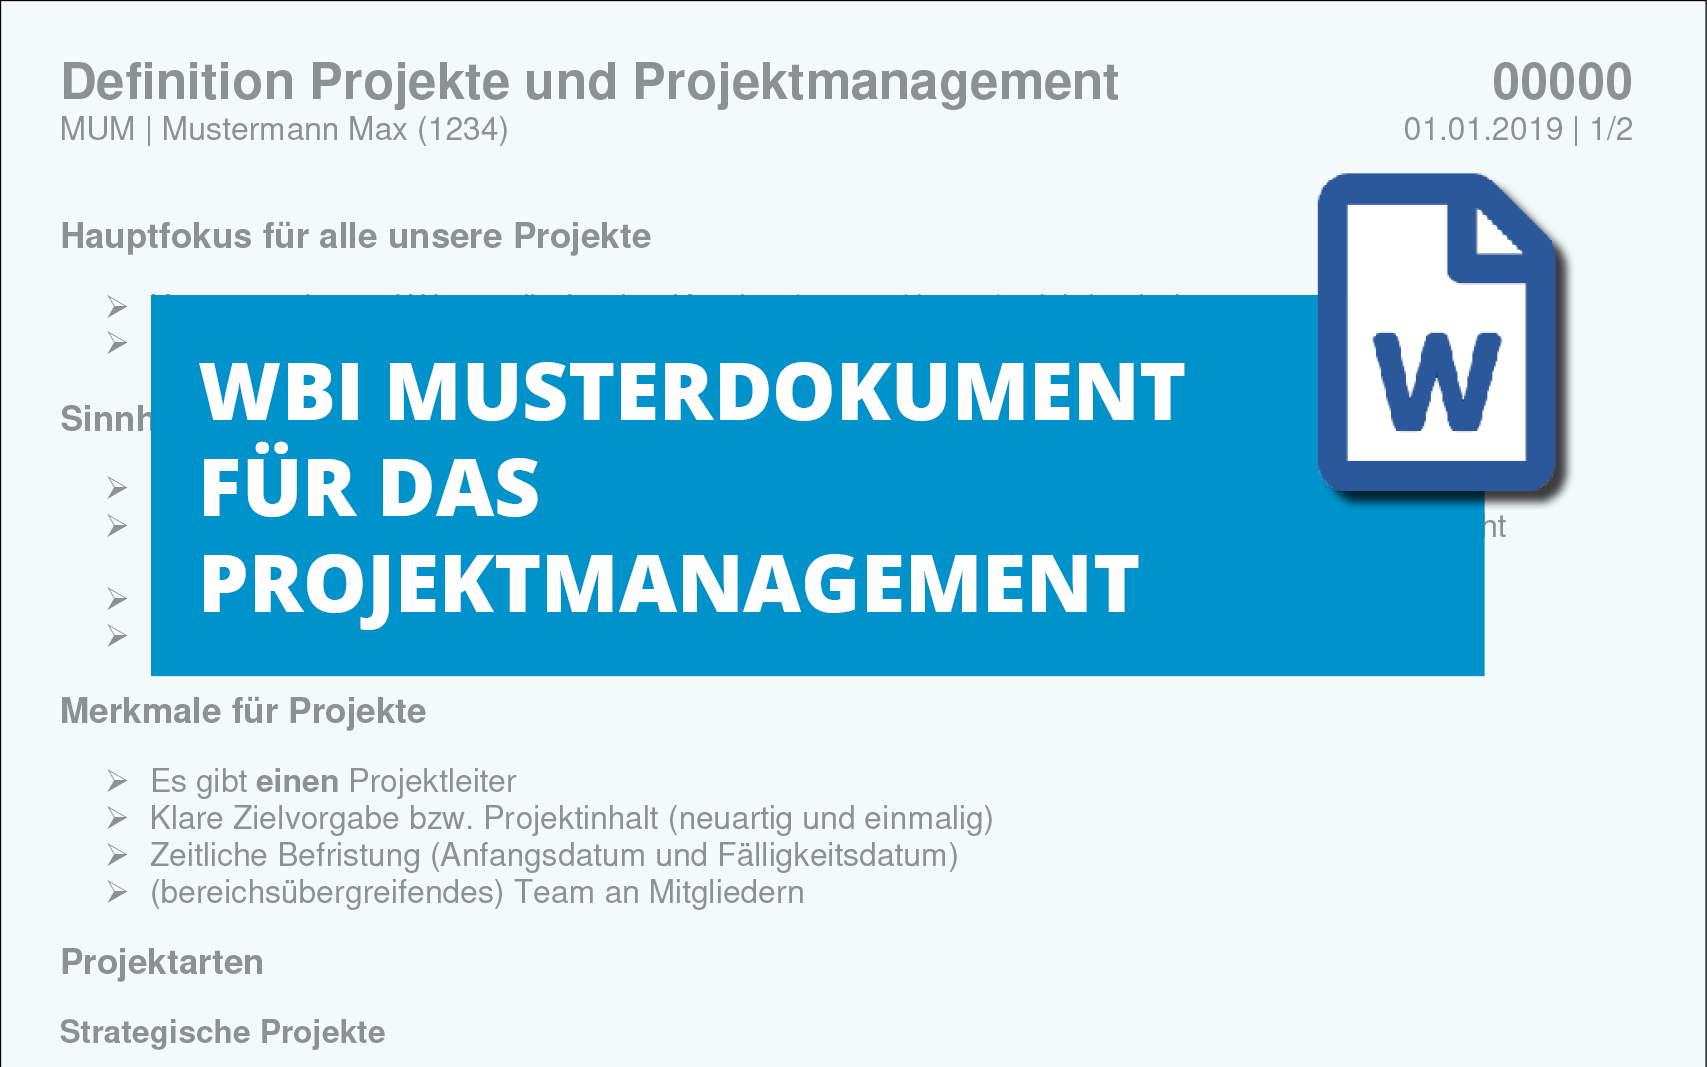 definition-projekte-und-projektmanagement